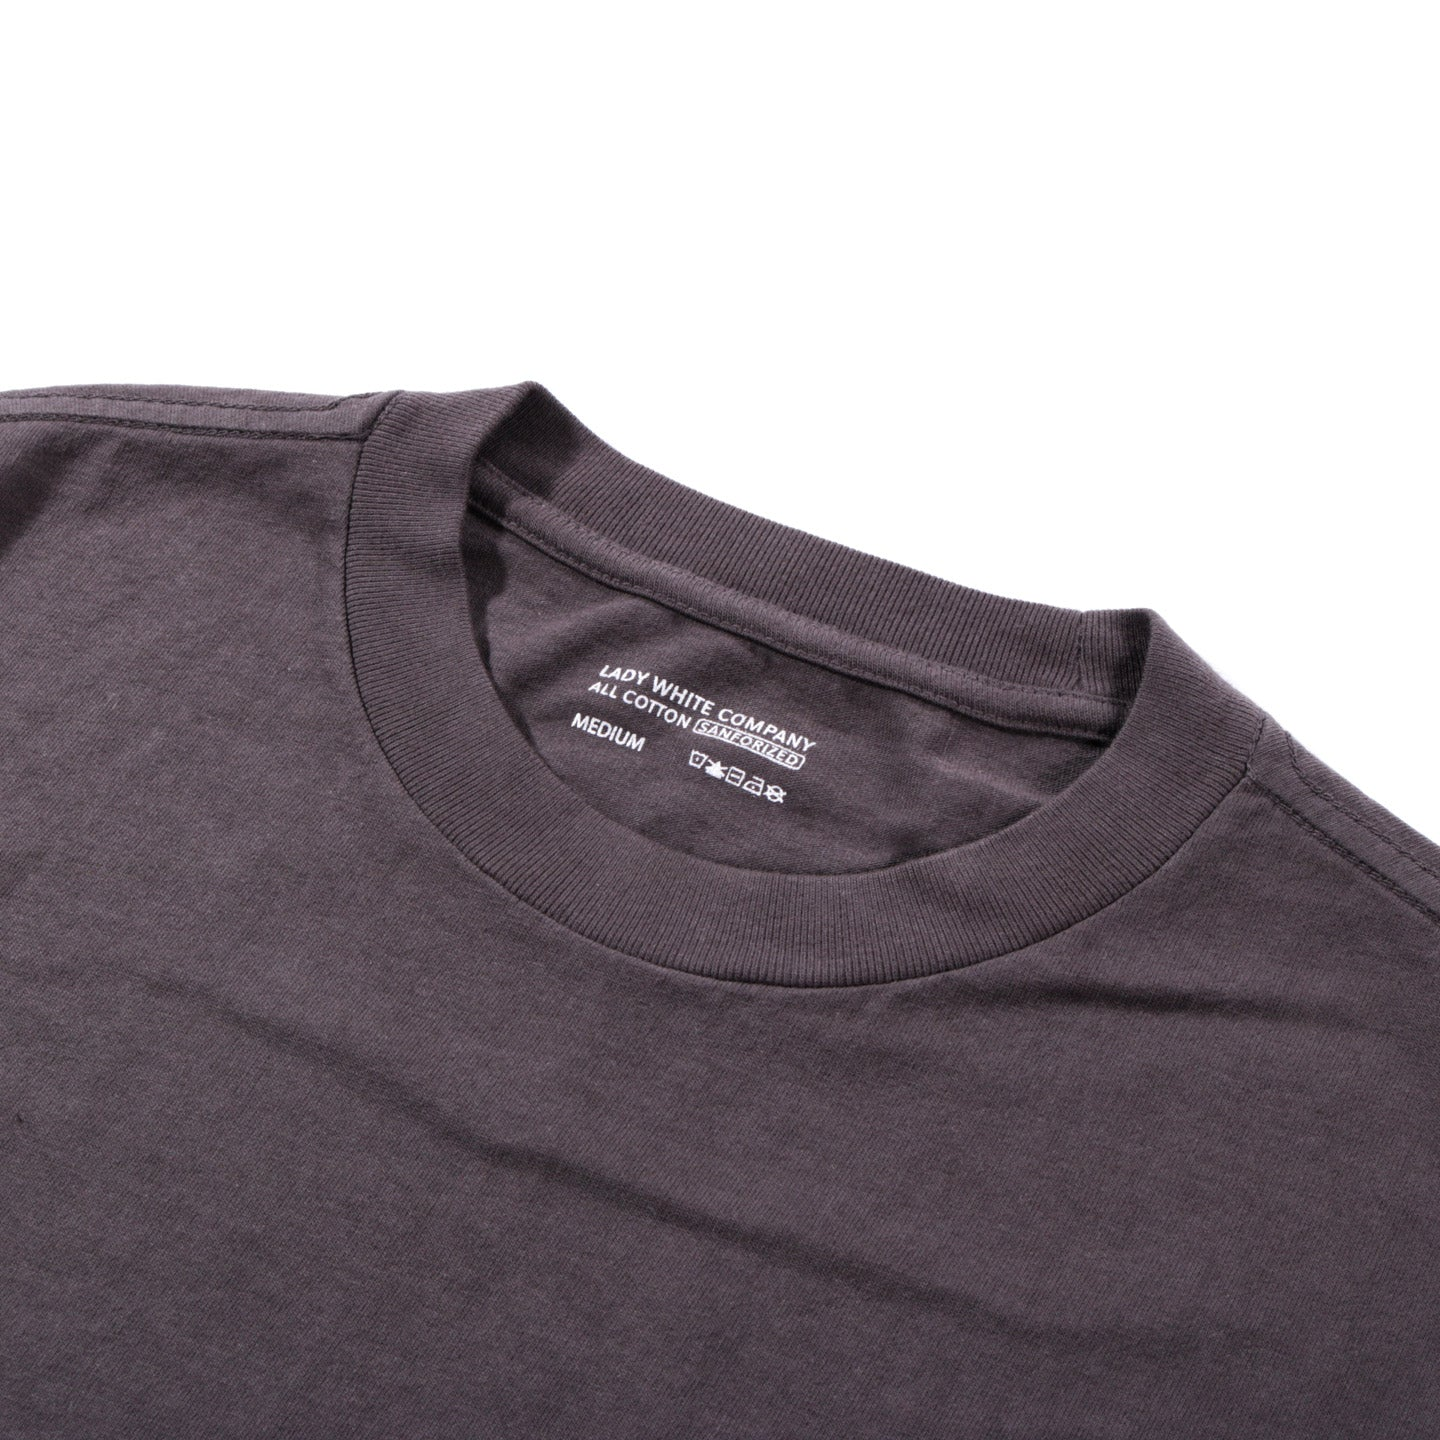 LADY WHITE CO. BALTA POCKET T-SHIRT FADED BLACK